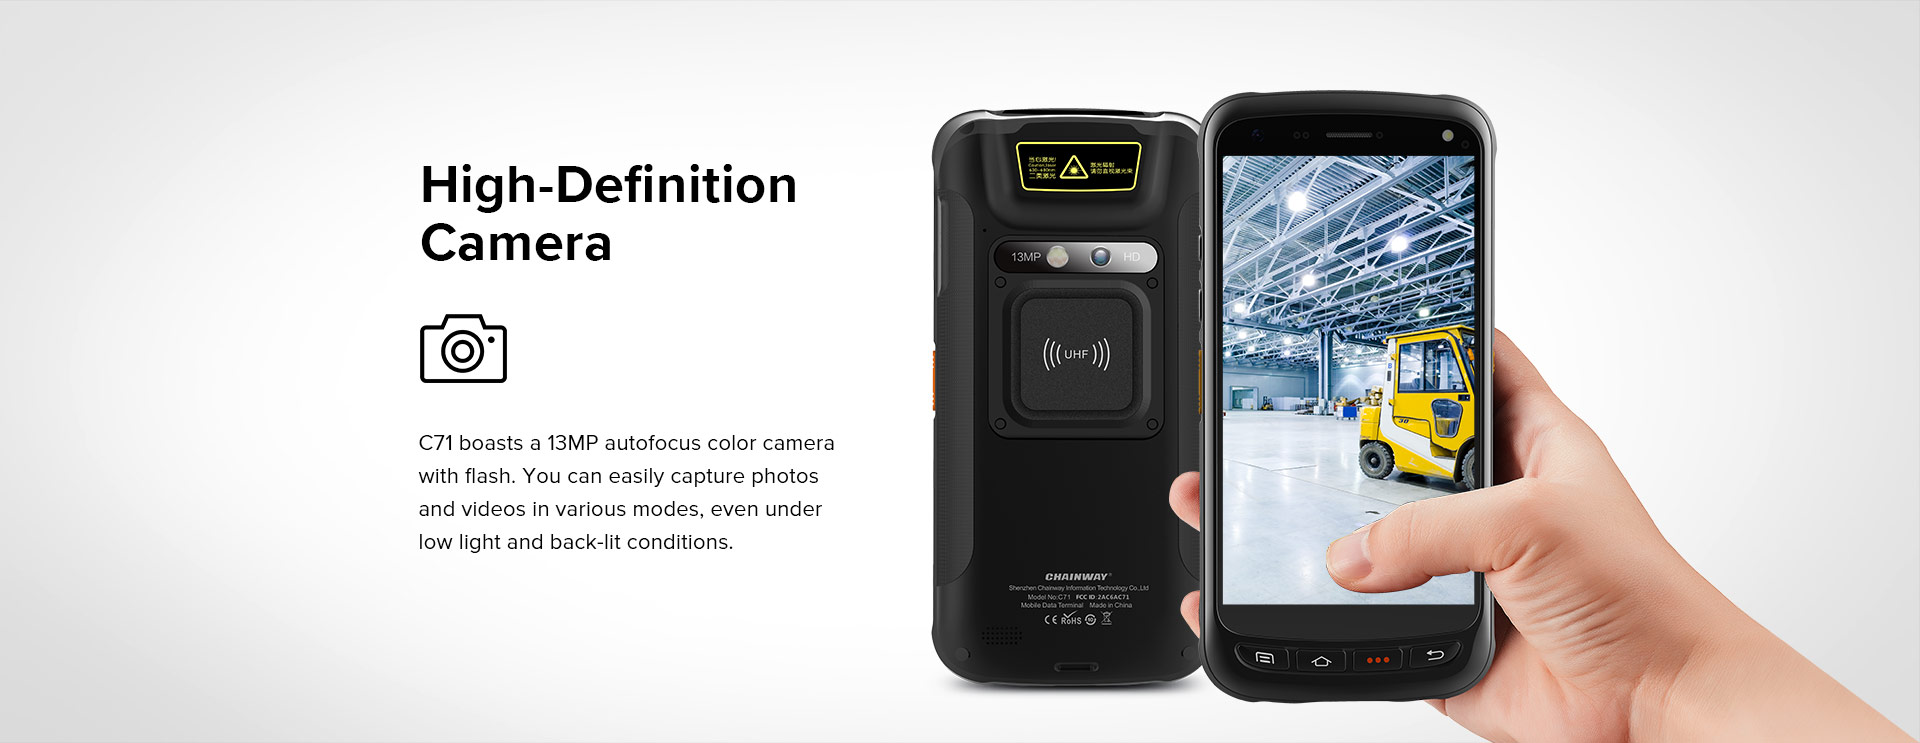 C71 - Android Industrial Mobile Computer RFID UHF - 13 MP camera